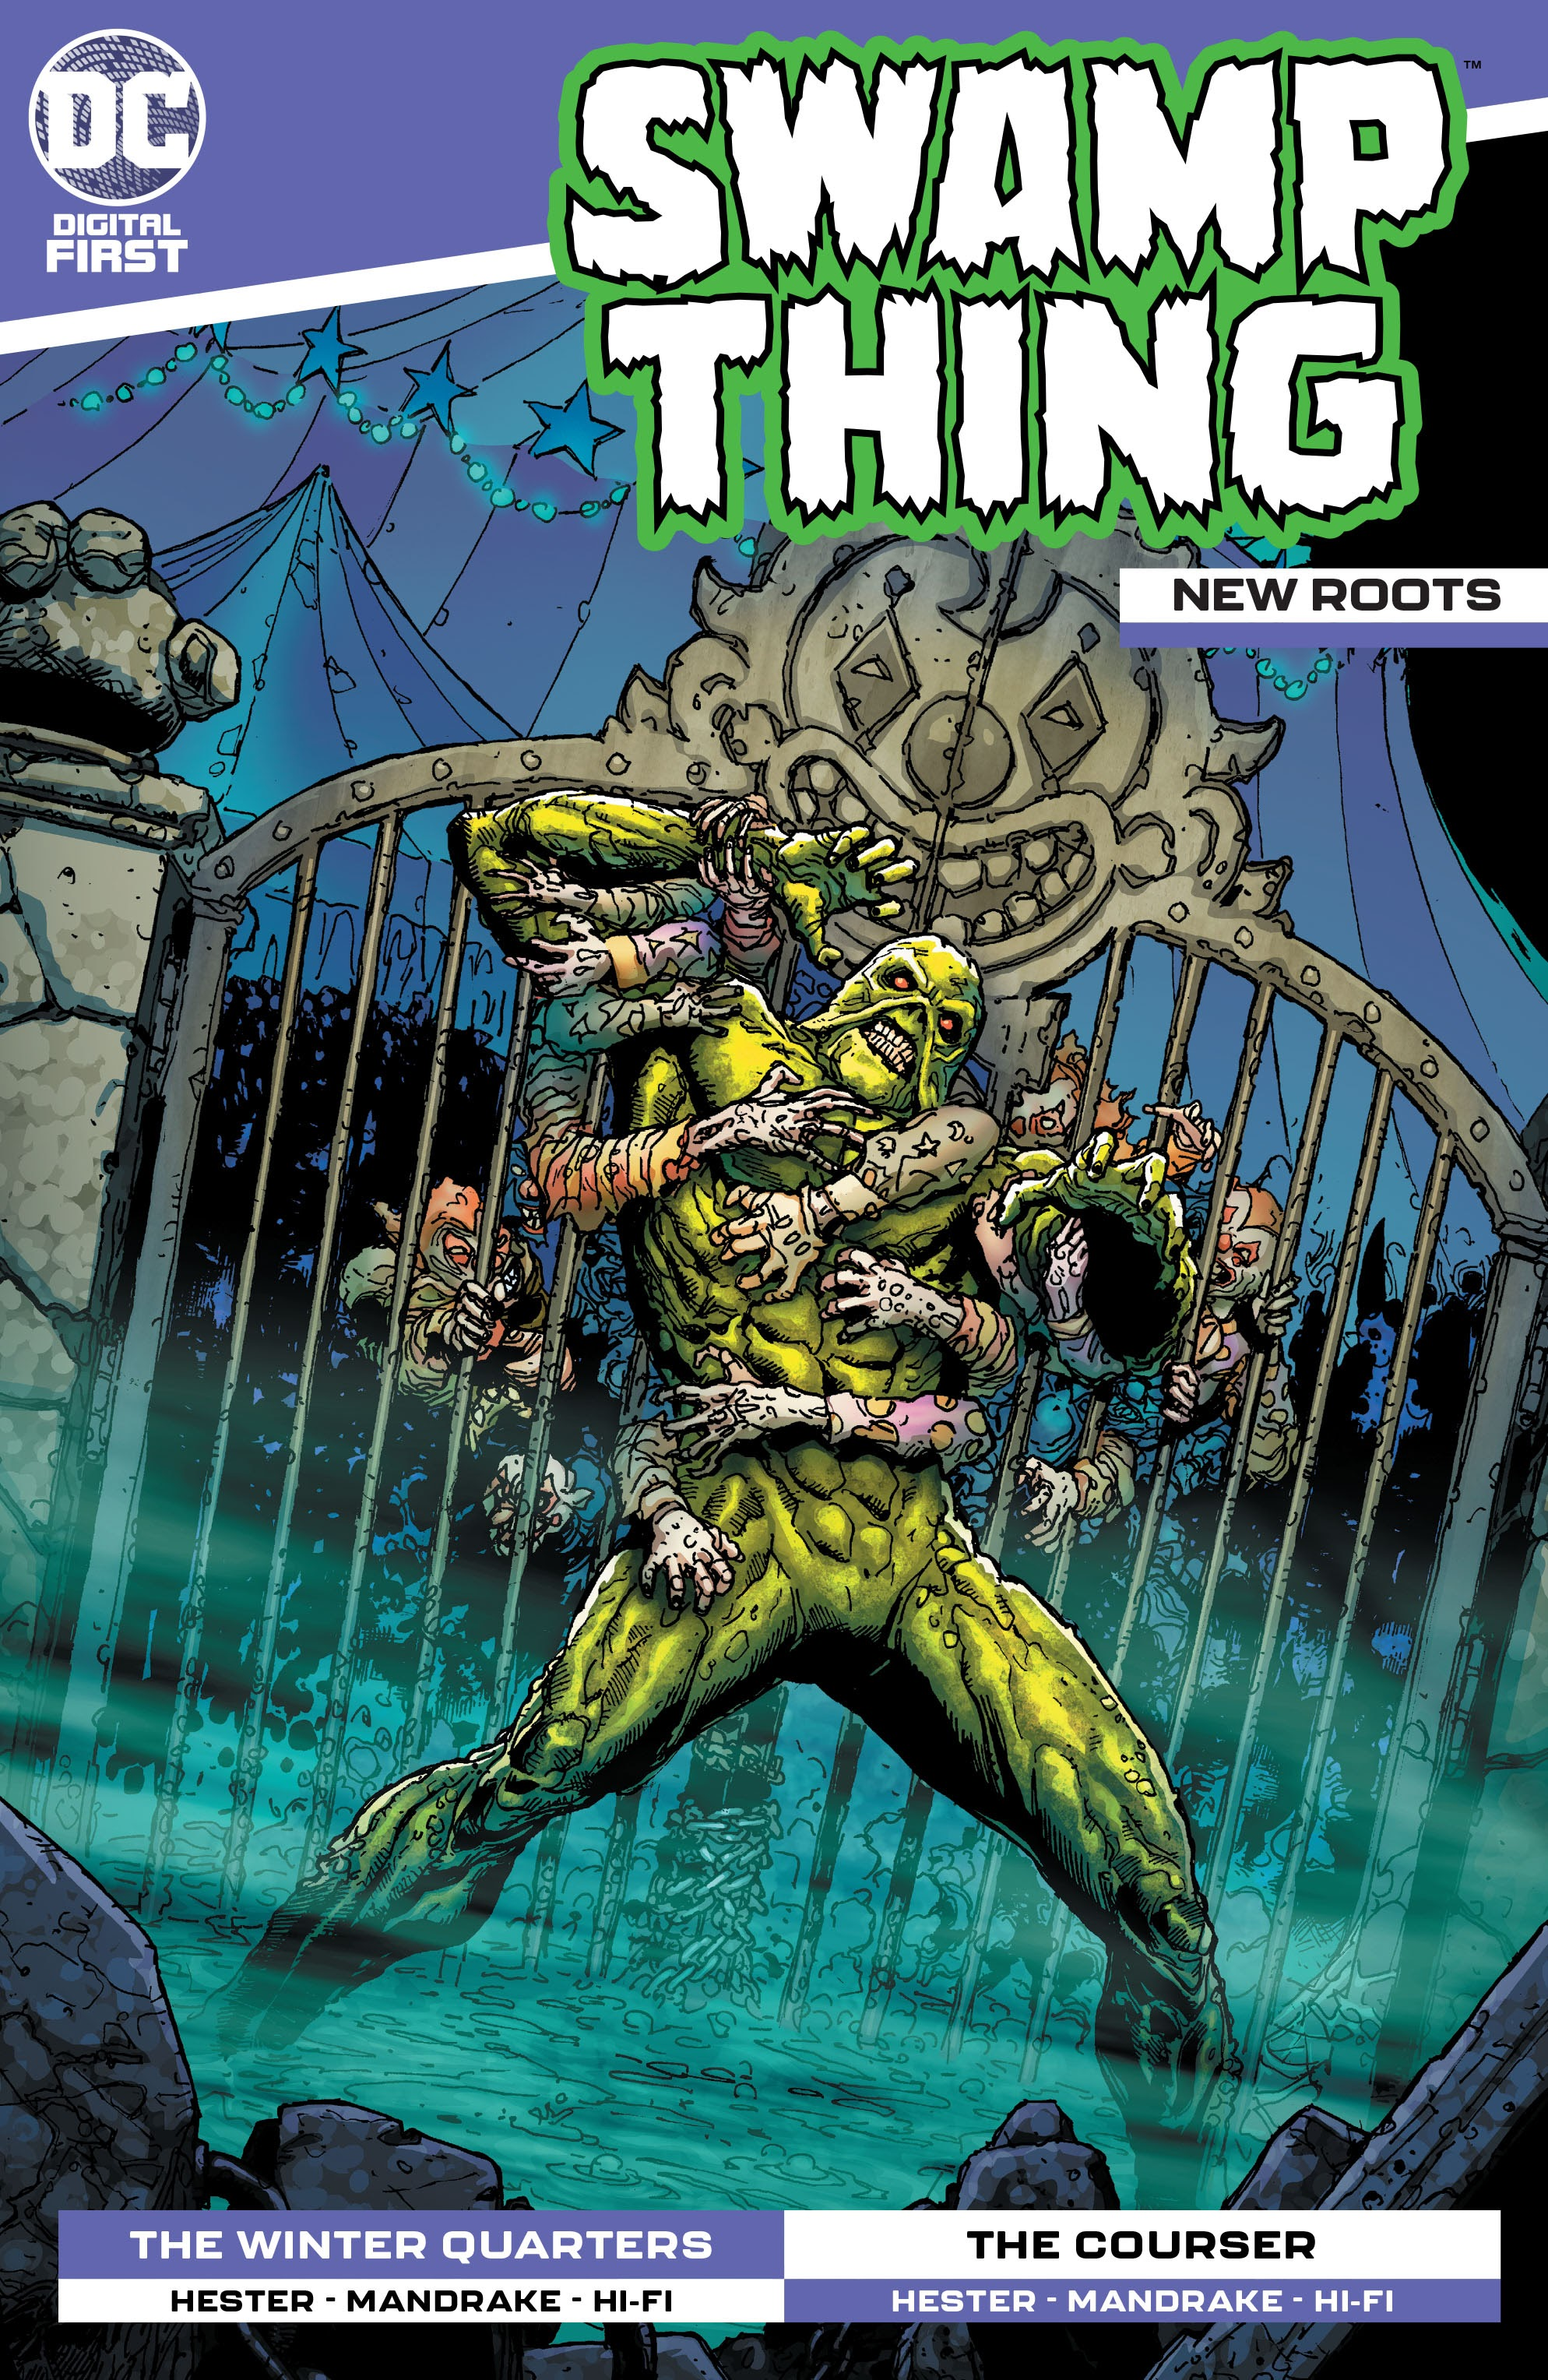 Swamp Thing: New Roots Vol 1 7 (Digital)